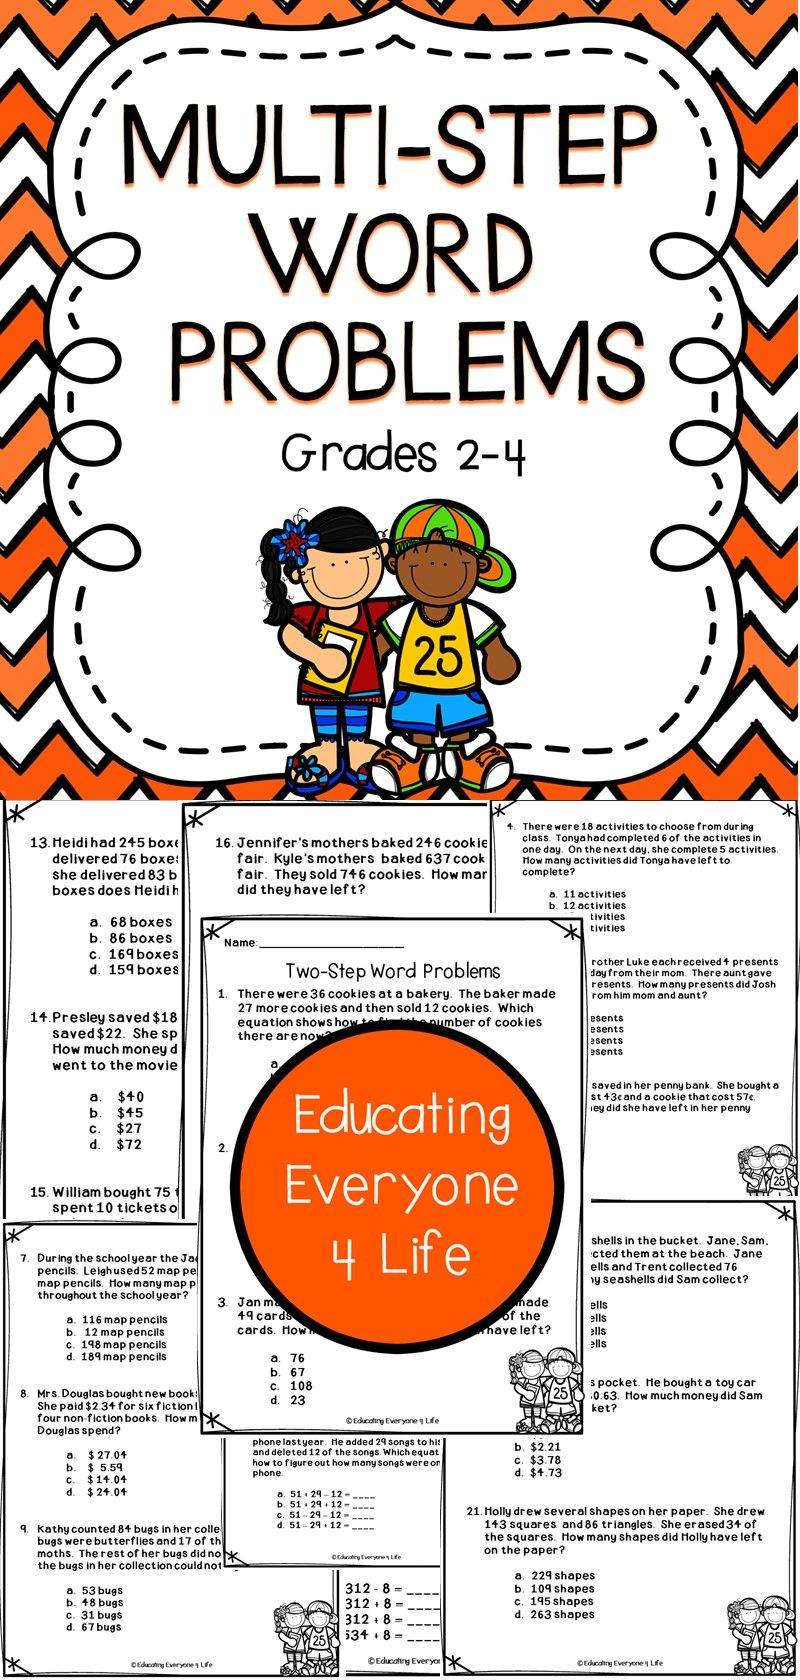 worksheet Multi Step Word Problems multi step word problems problem solving skills problems